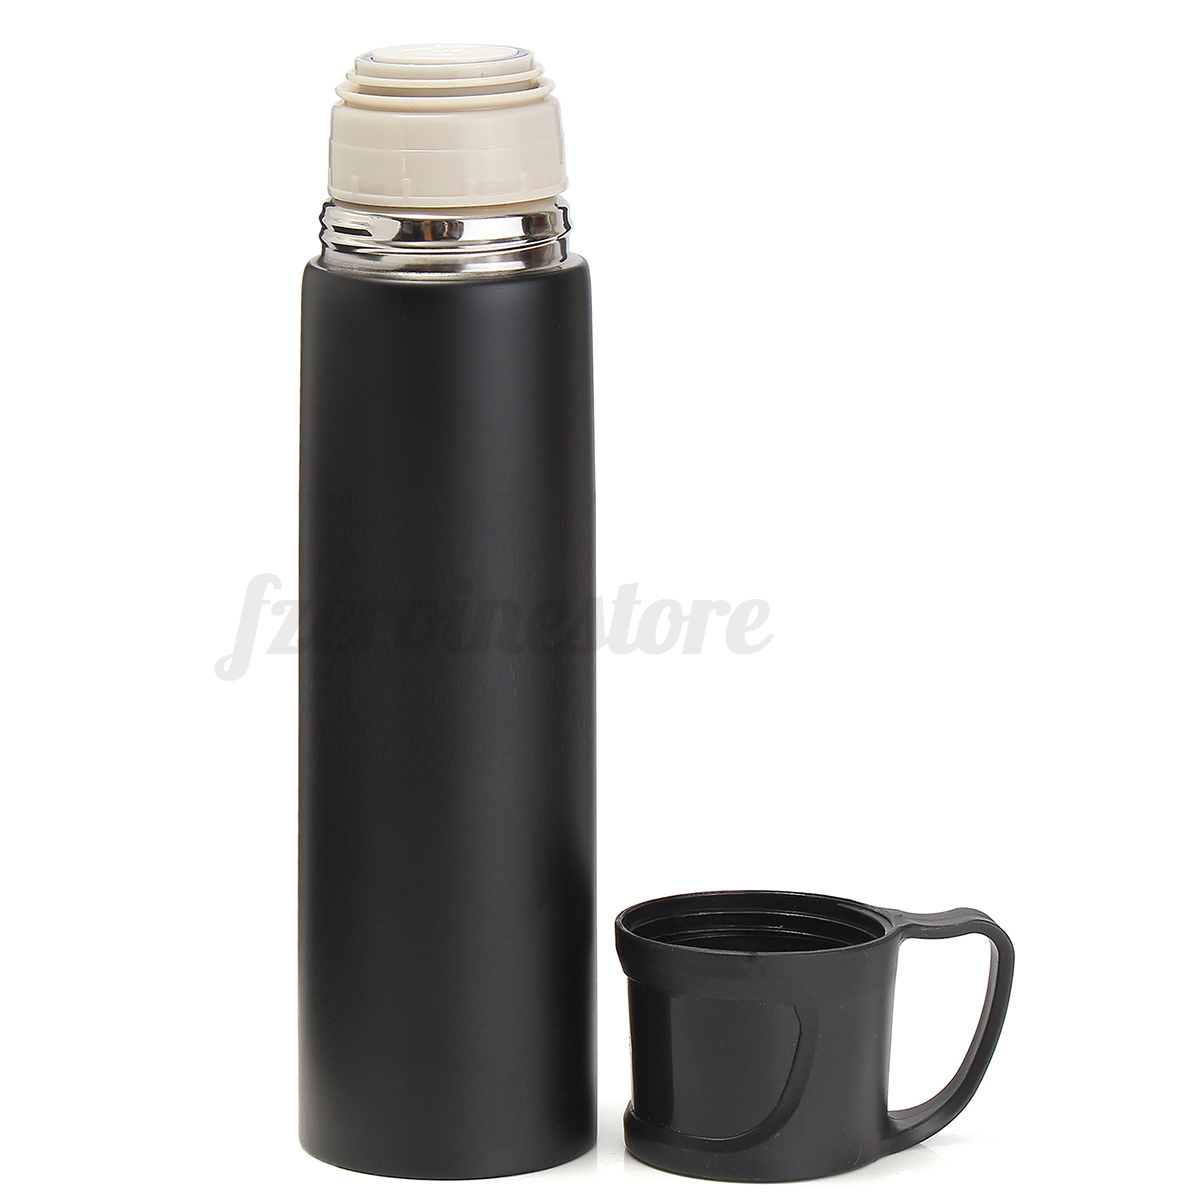 Thermos Cafe Thermos Termos Borraccia Termica Acciaio Inox Per Caffe